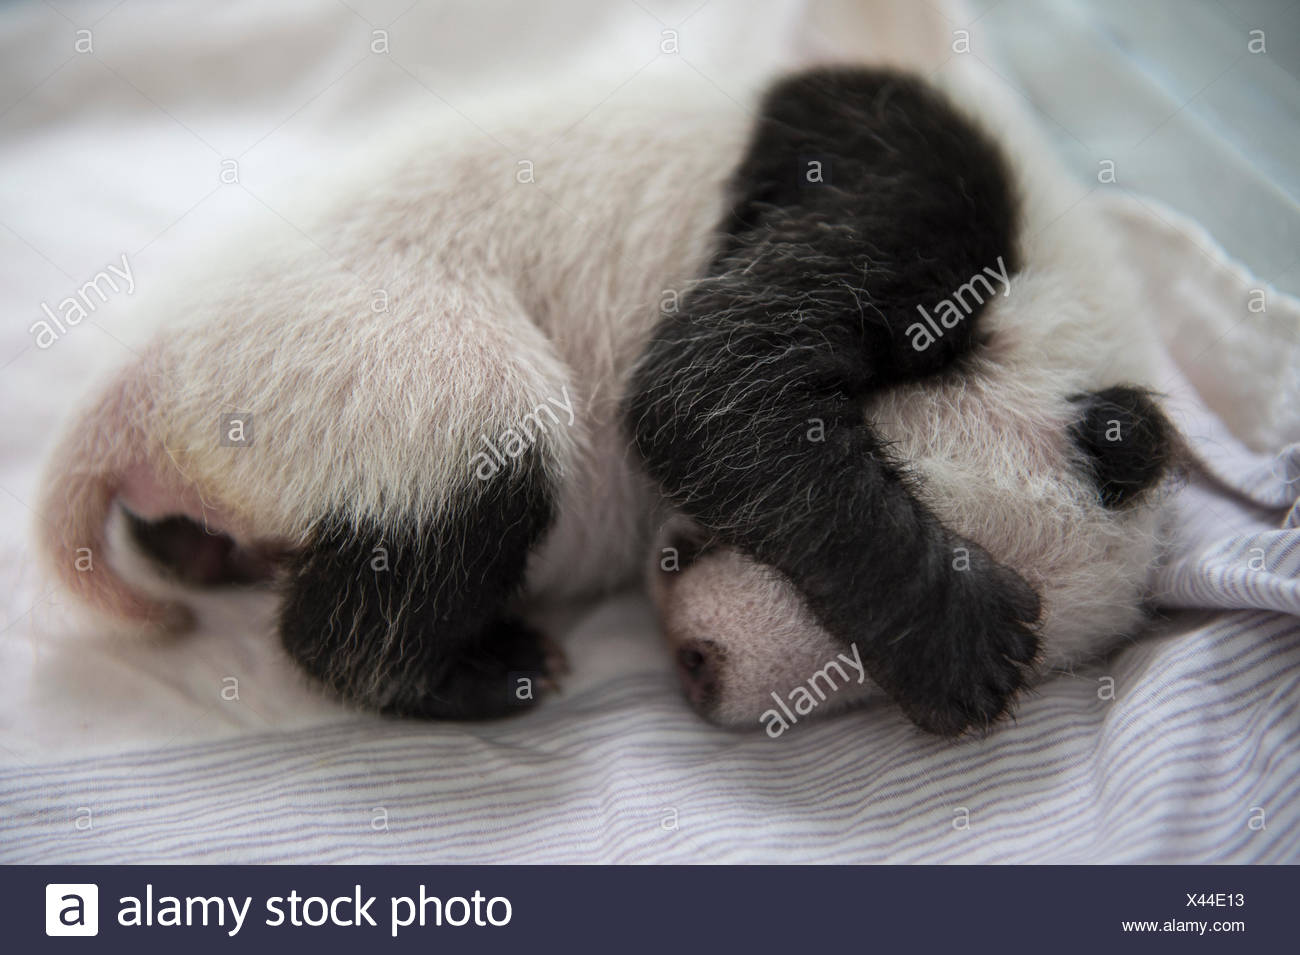 A giant panda cub that is only weeks old sleeps inside an incubator at the Bifengxia Giant Panda Breeding and Research Center. - Stock Image